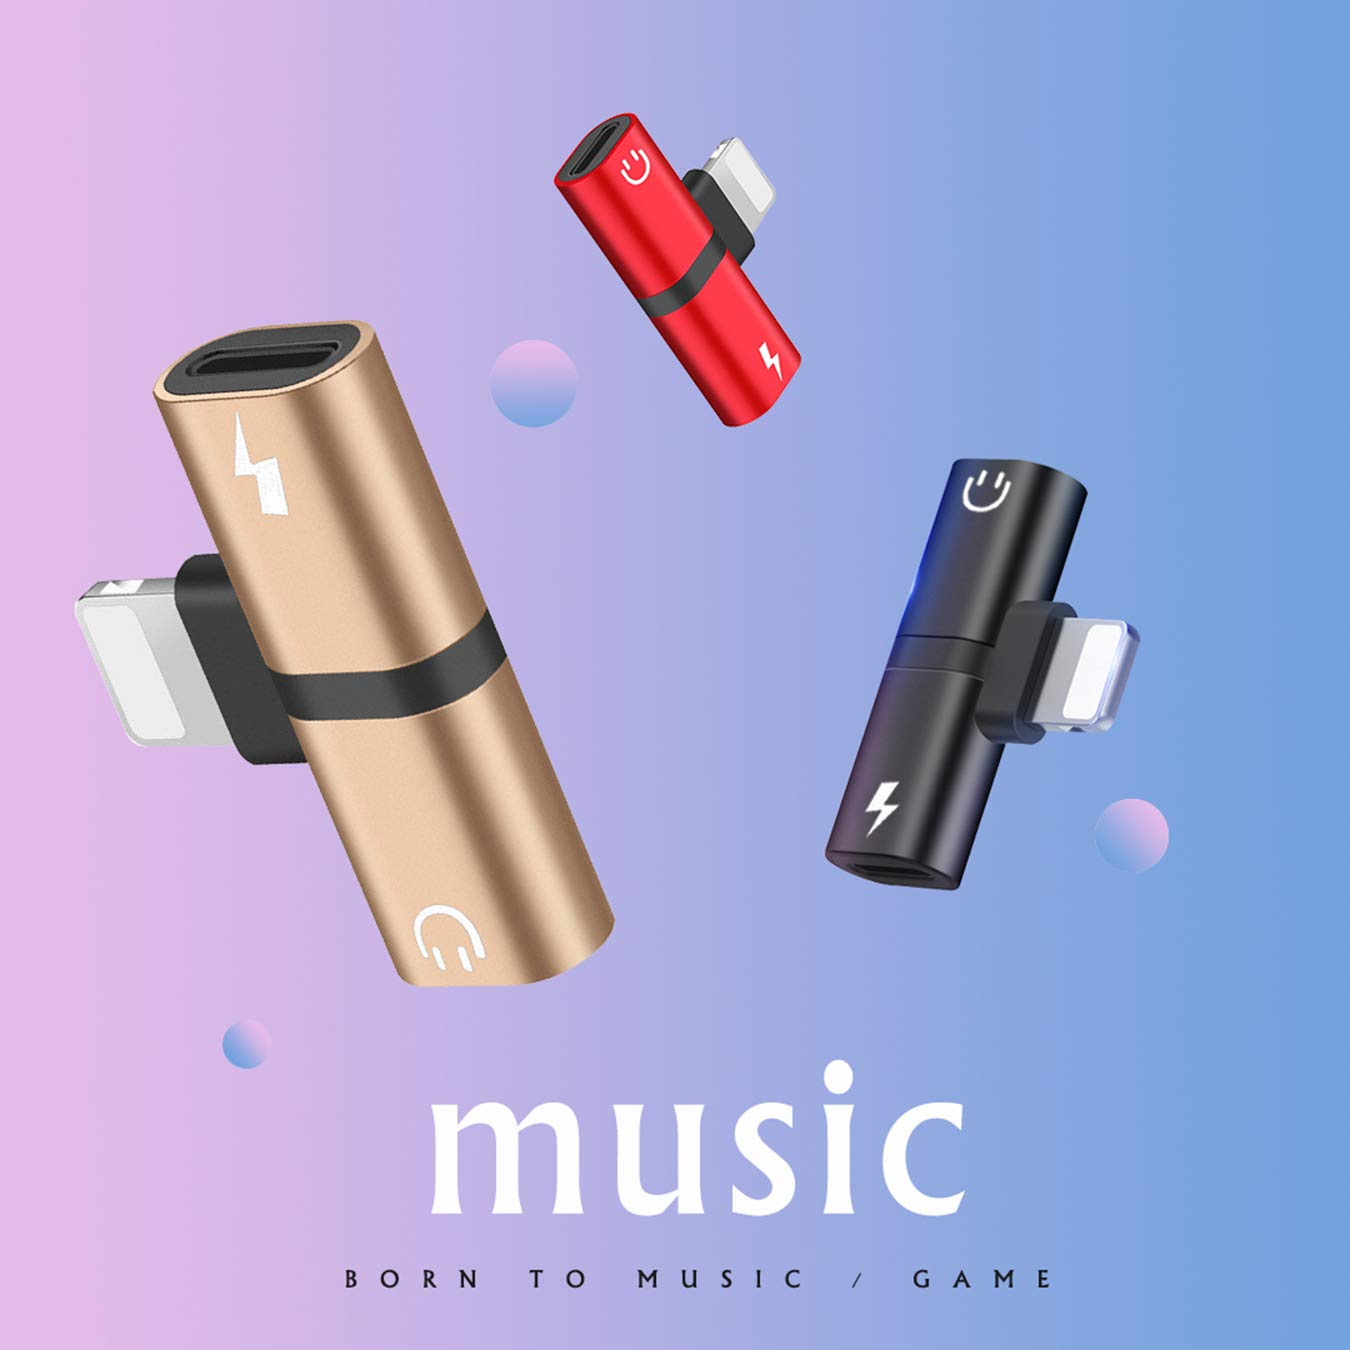 Car Accessories for iPhone Charger Cable Audio and Charge Adapter 2 in 1 Dongle Headphone Music Splitter Hamdol for iPhone 7 Adapter Headphone Jack Adapter for iPhone 8// xr//xs max Accessories